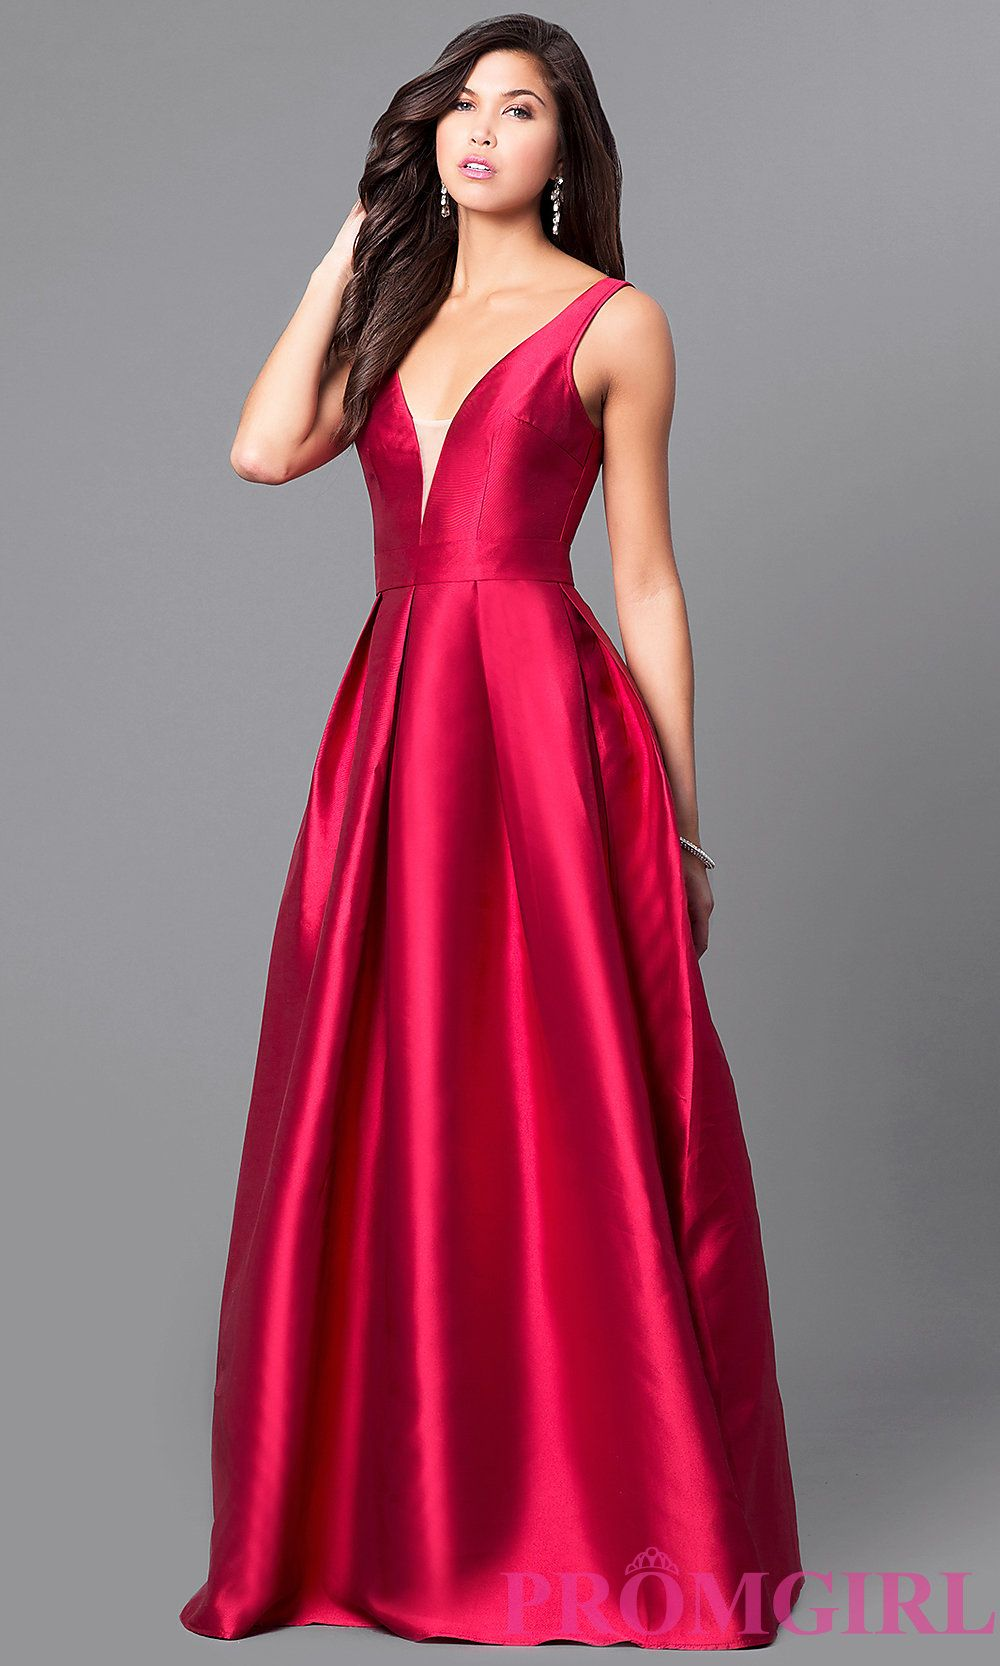 4b8fbea3843 Image of long satin v-neck prom dress with box pleats. Style  LP-24262  Detail Image 1